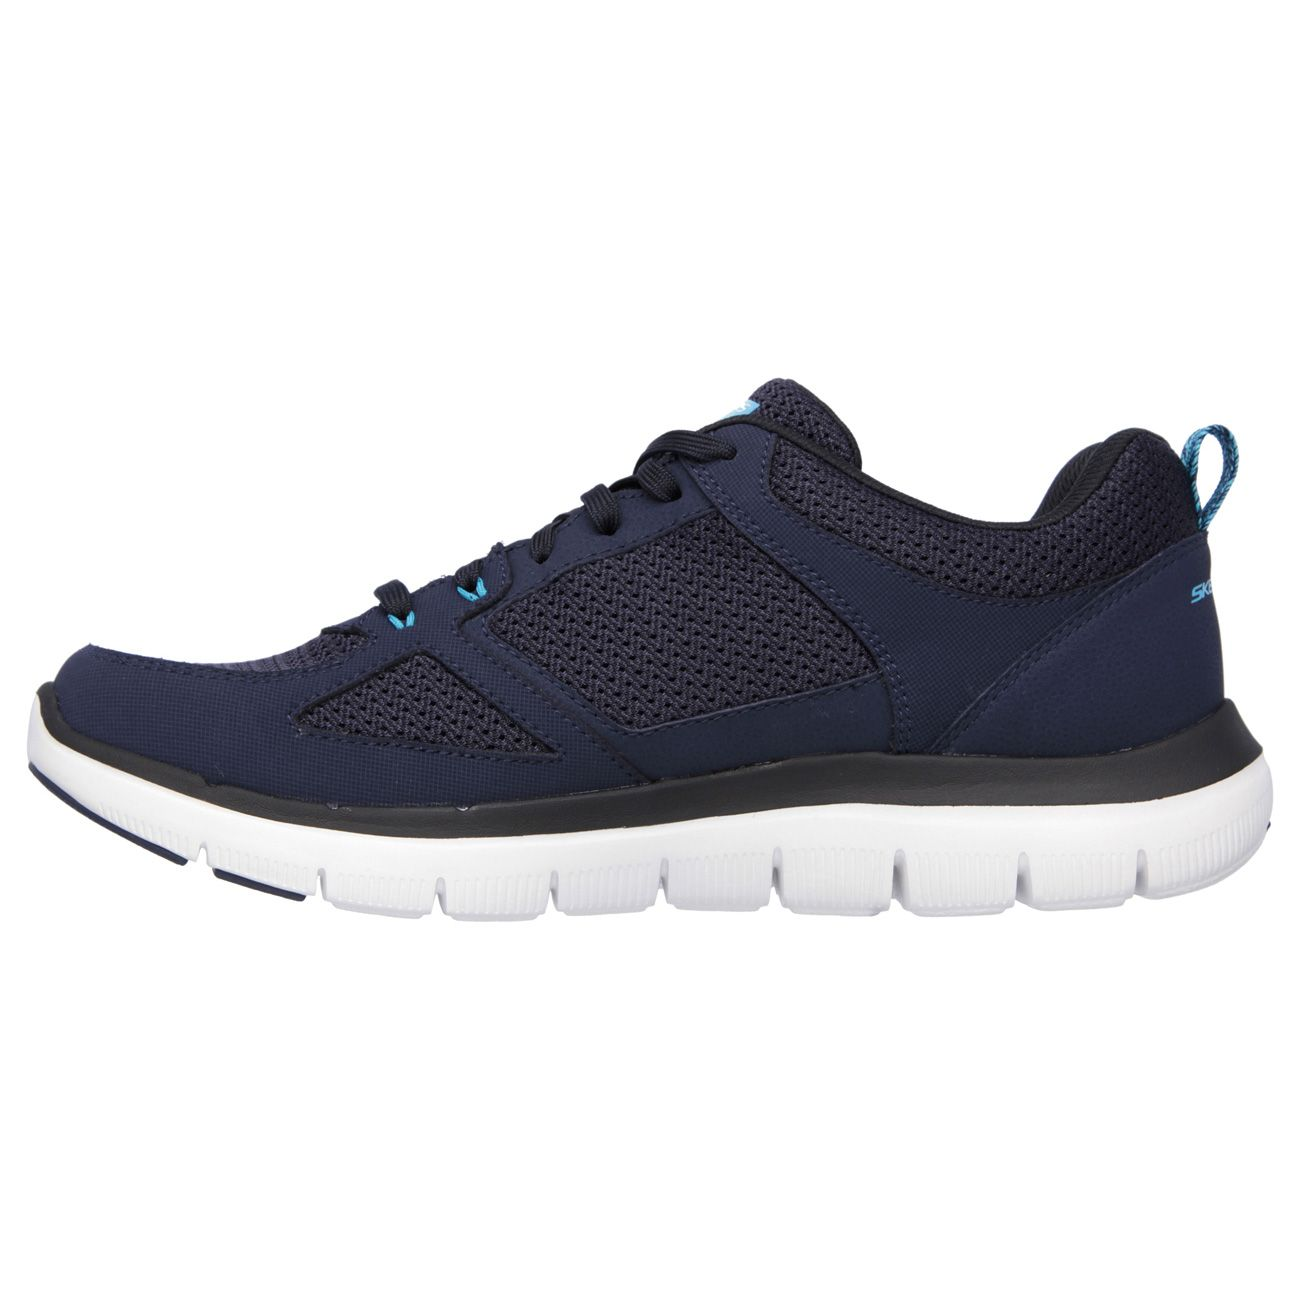 Navy Blue Athletic Walking Shoes